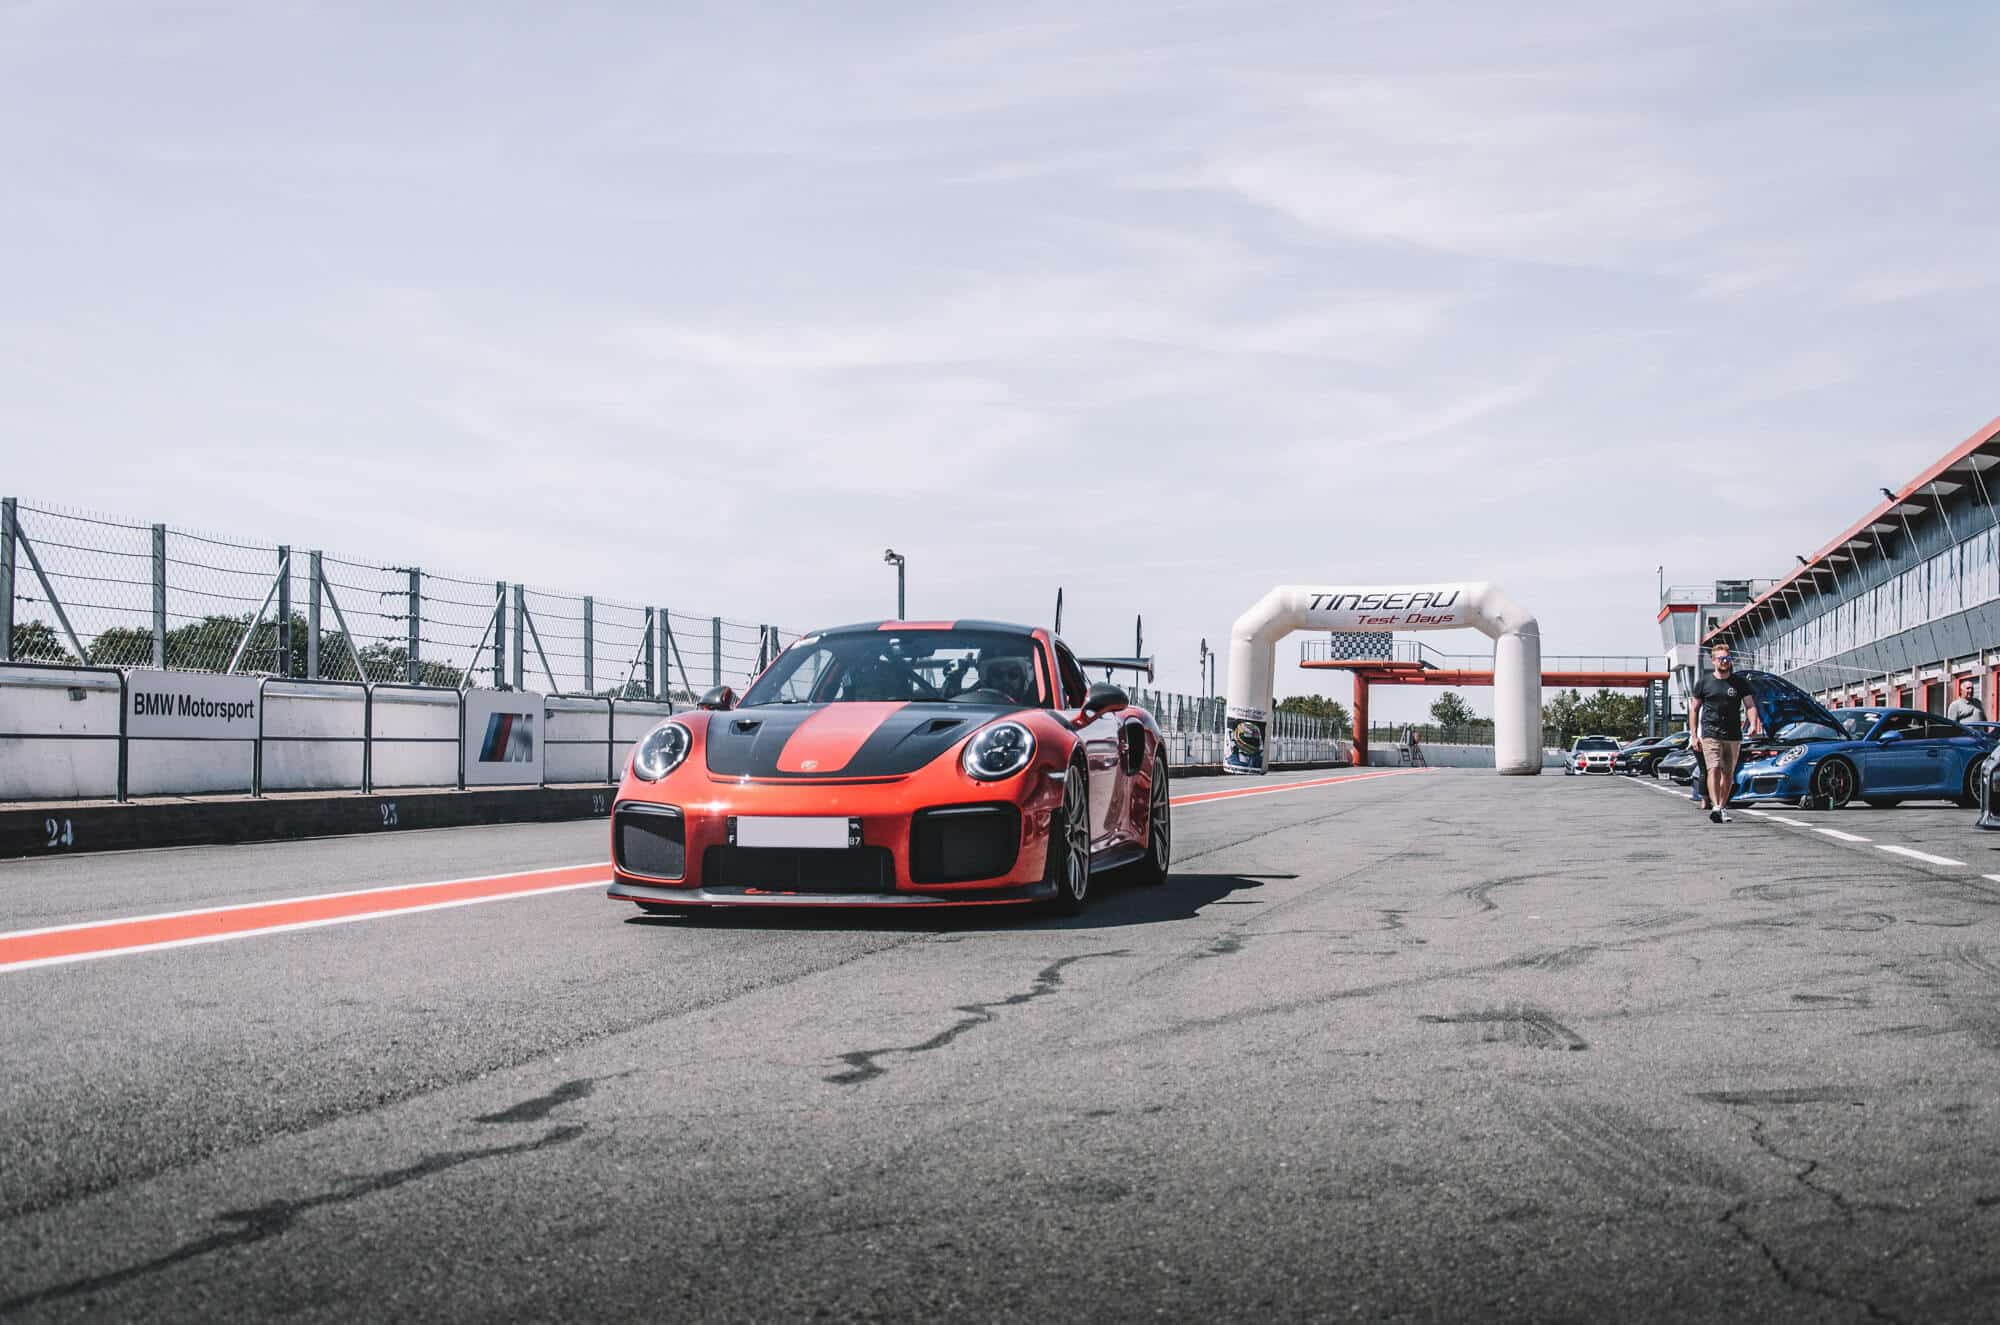 armada-racing-Trackday-experience-val-de-vienne-aout-2019-99